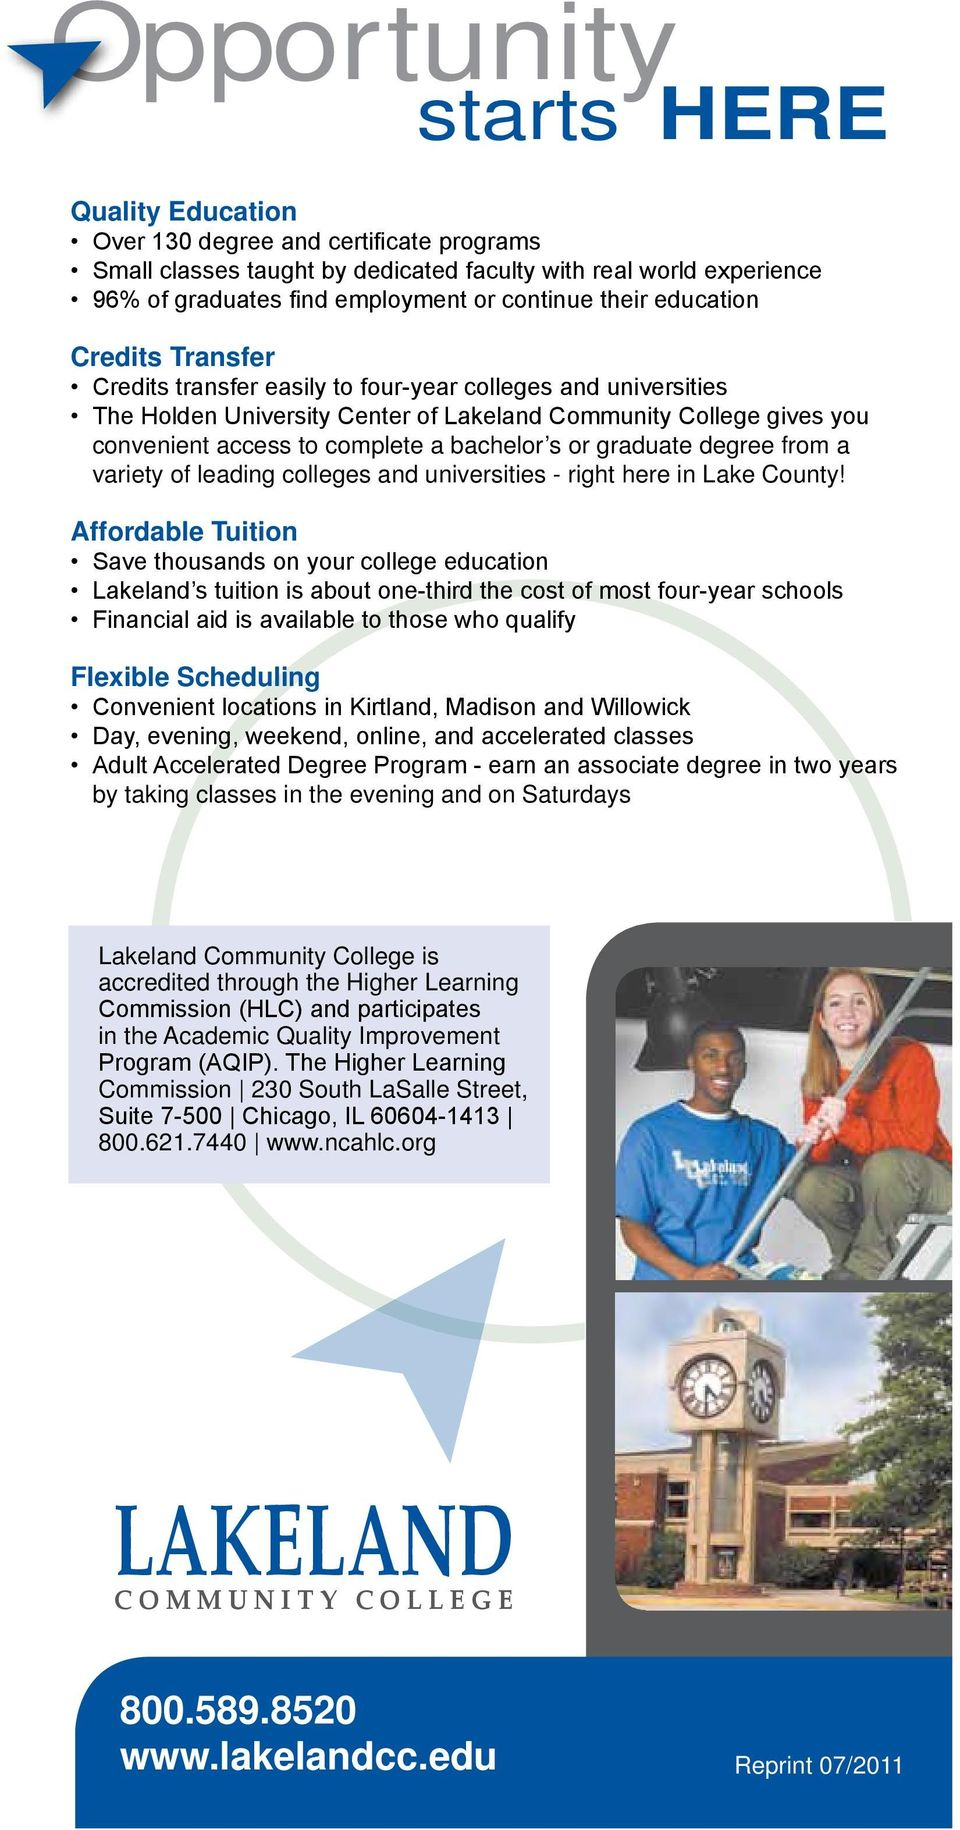 bachelor s or graduate degree from a variety of leading colleges and universities - right here in Lake County!